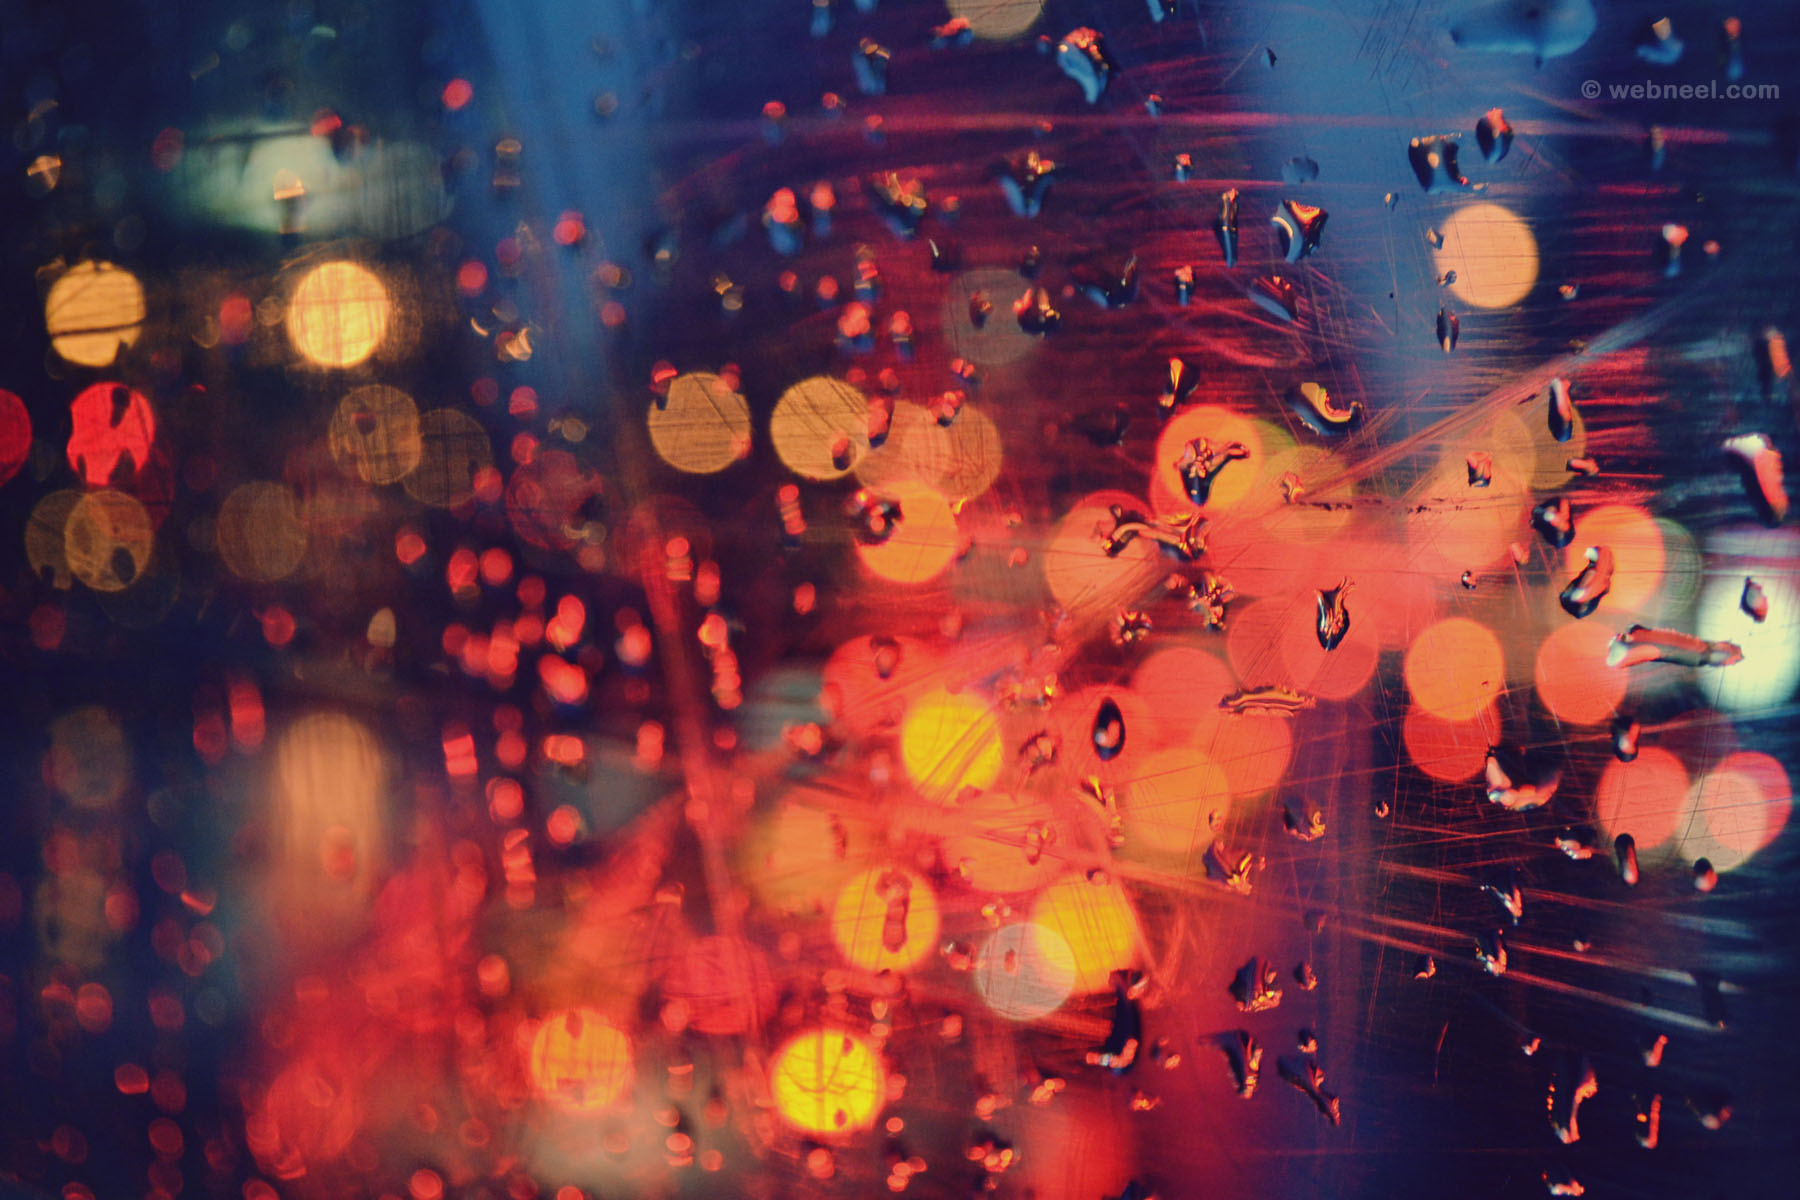 rain wallpaper night light